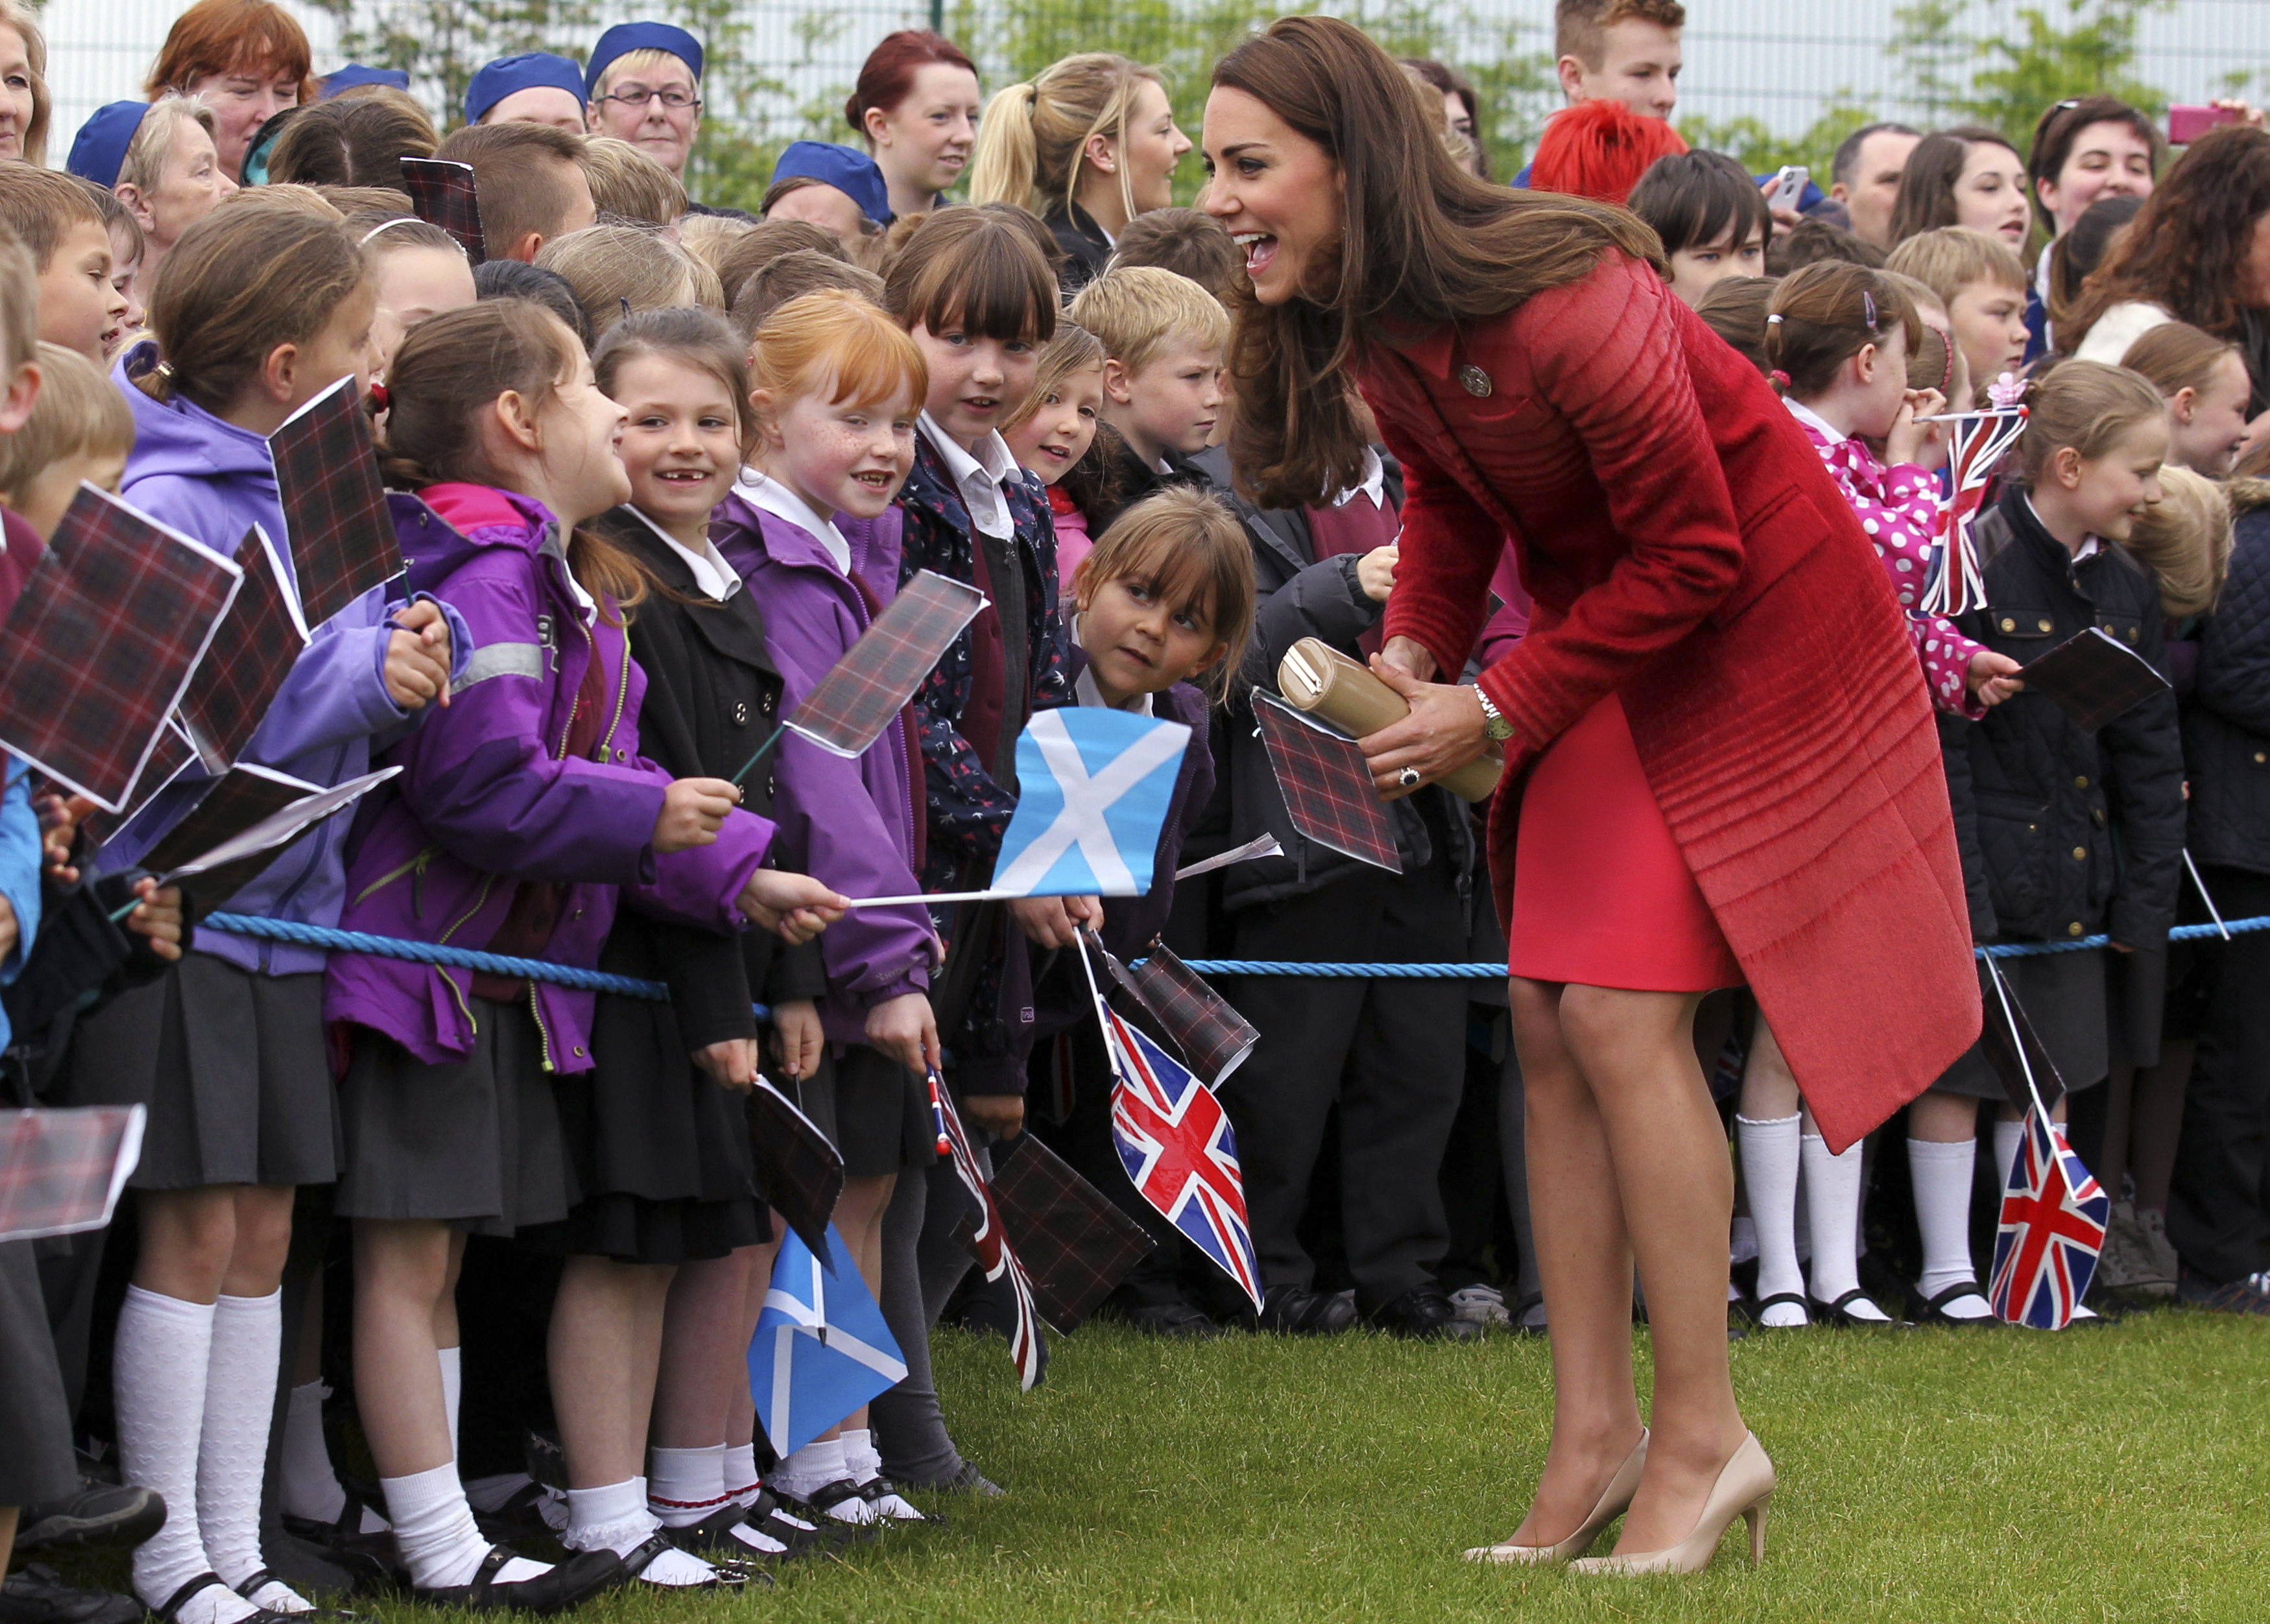 <strong>Lady in Red</strong>Britain's Catherine, the Duchess of Cambridge, meets pupils and community members during a visit to the Strathearn Community Campus at Crieff in Scotland on May 29, 2014.